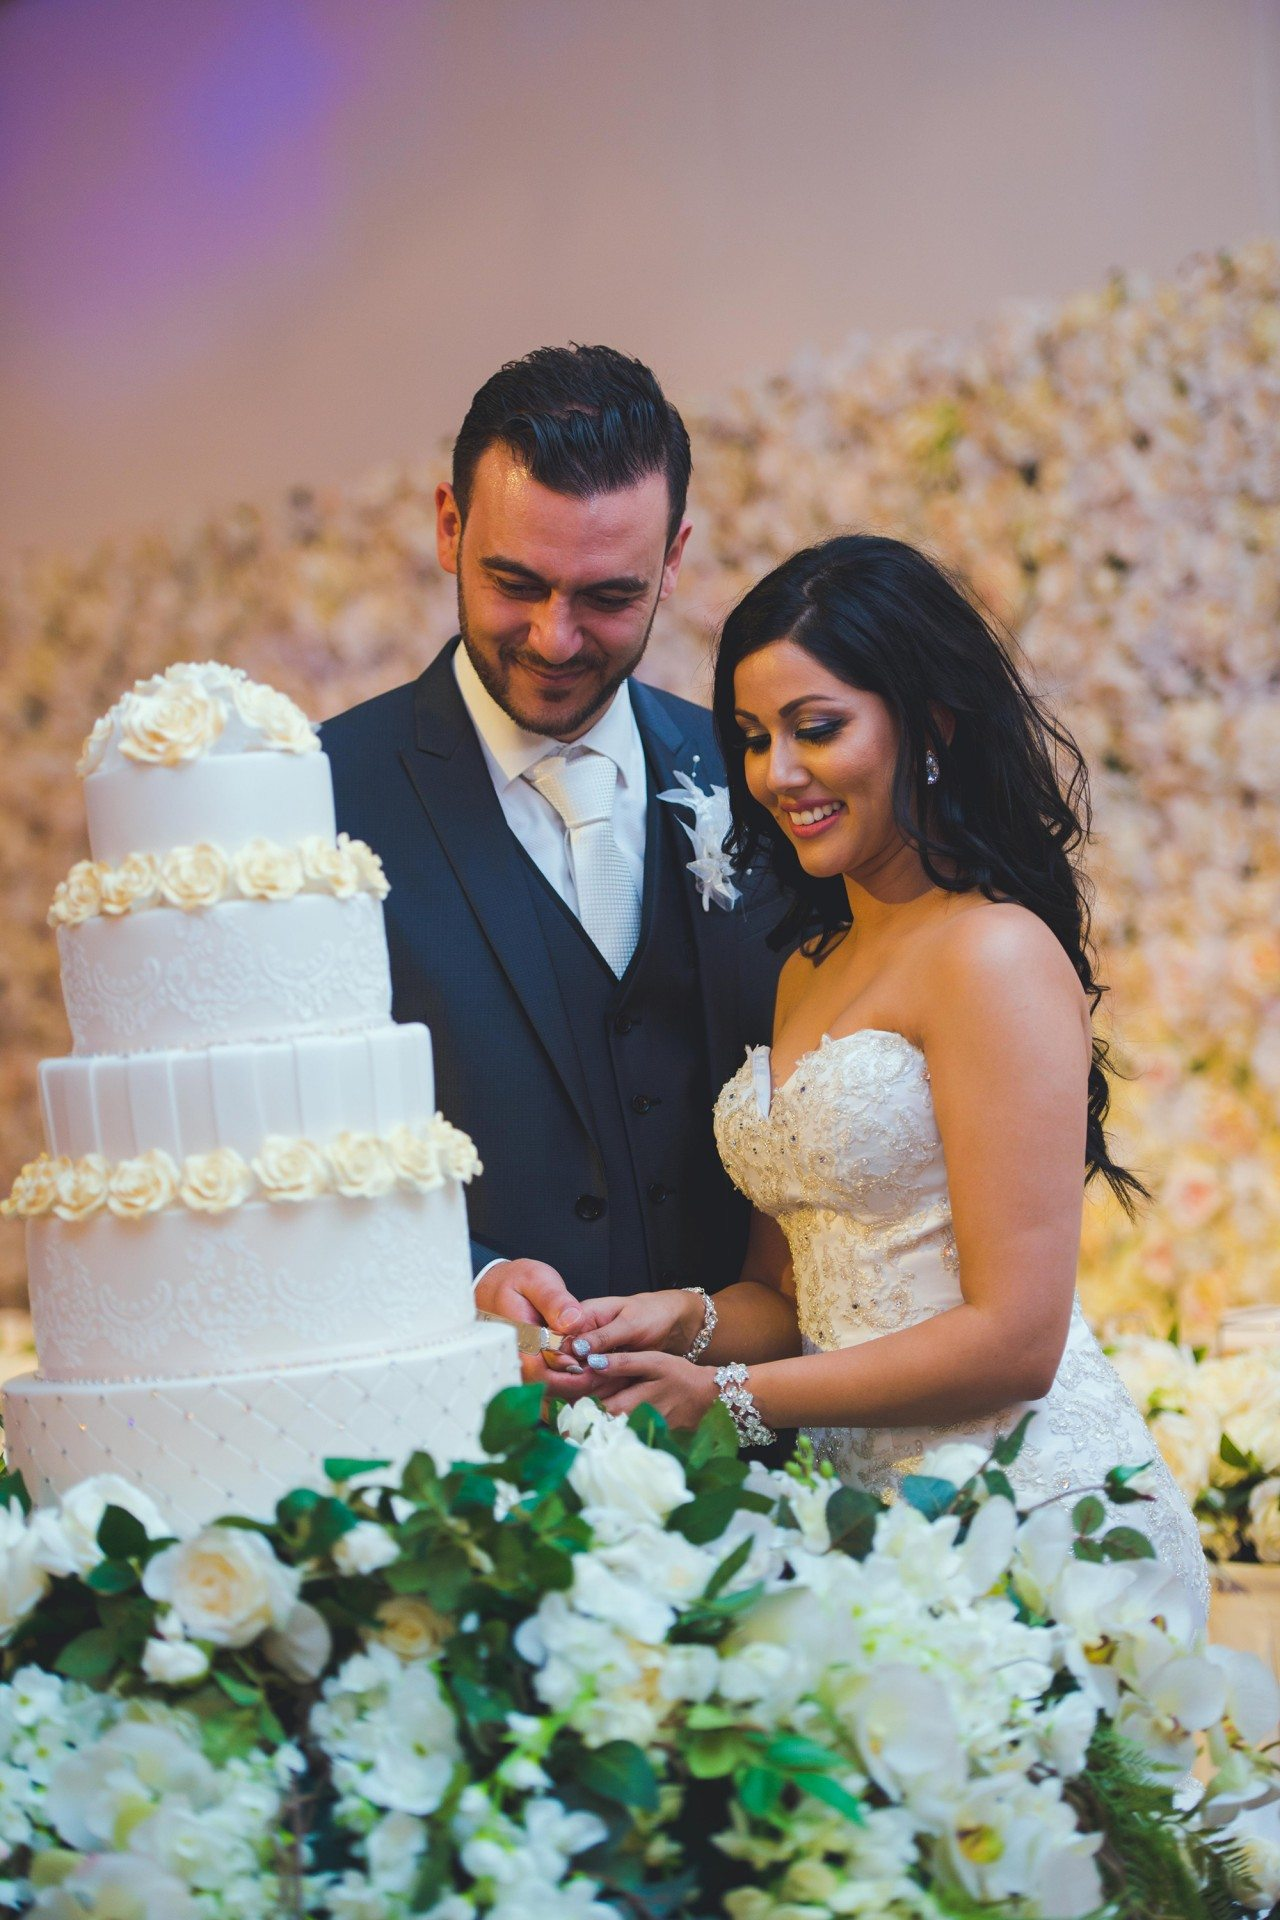 bride and groom cutting 4 tier white wedding cake